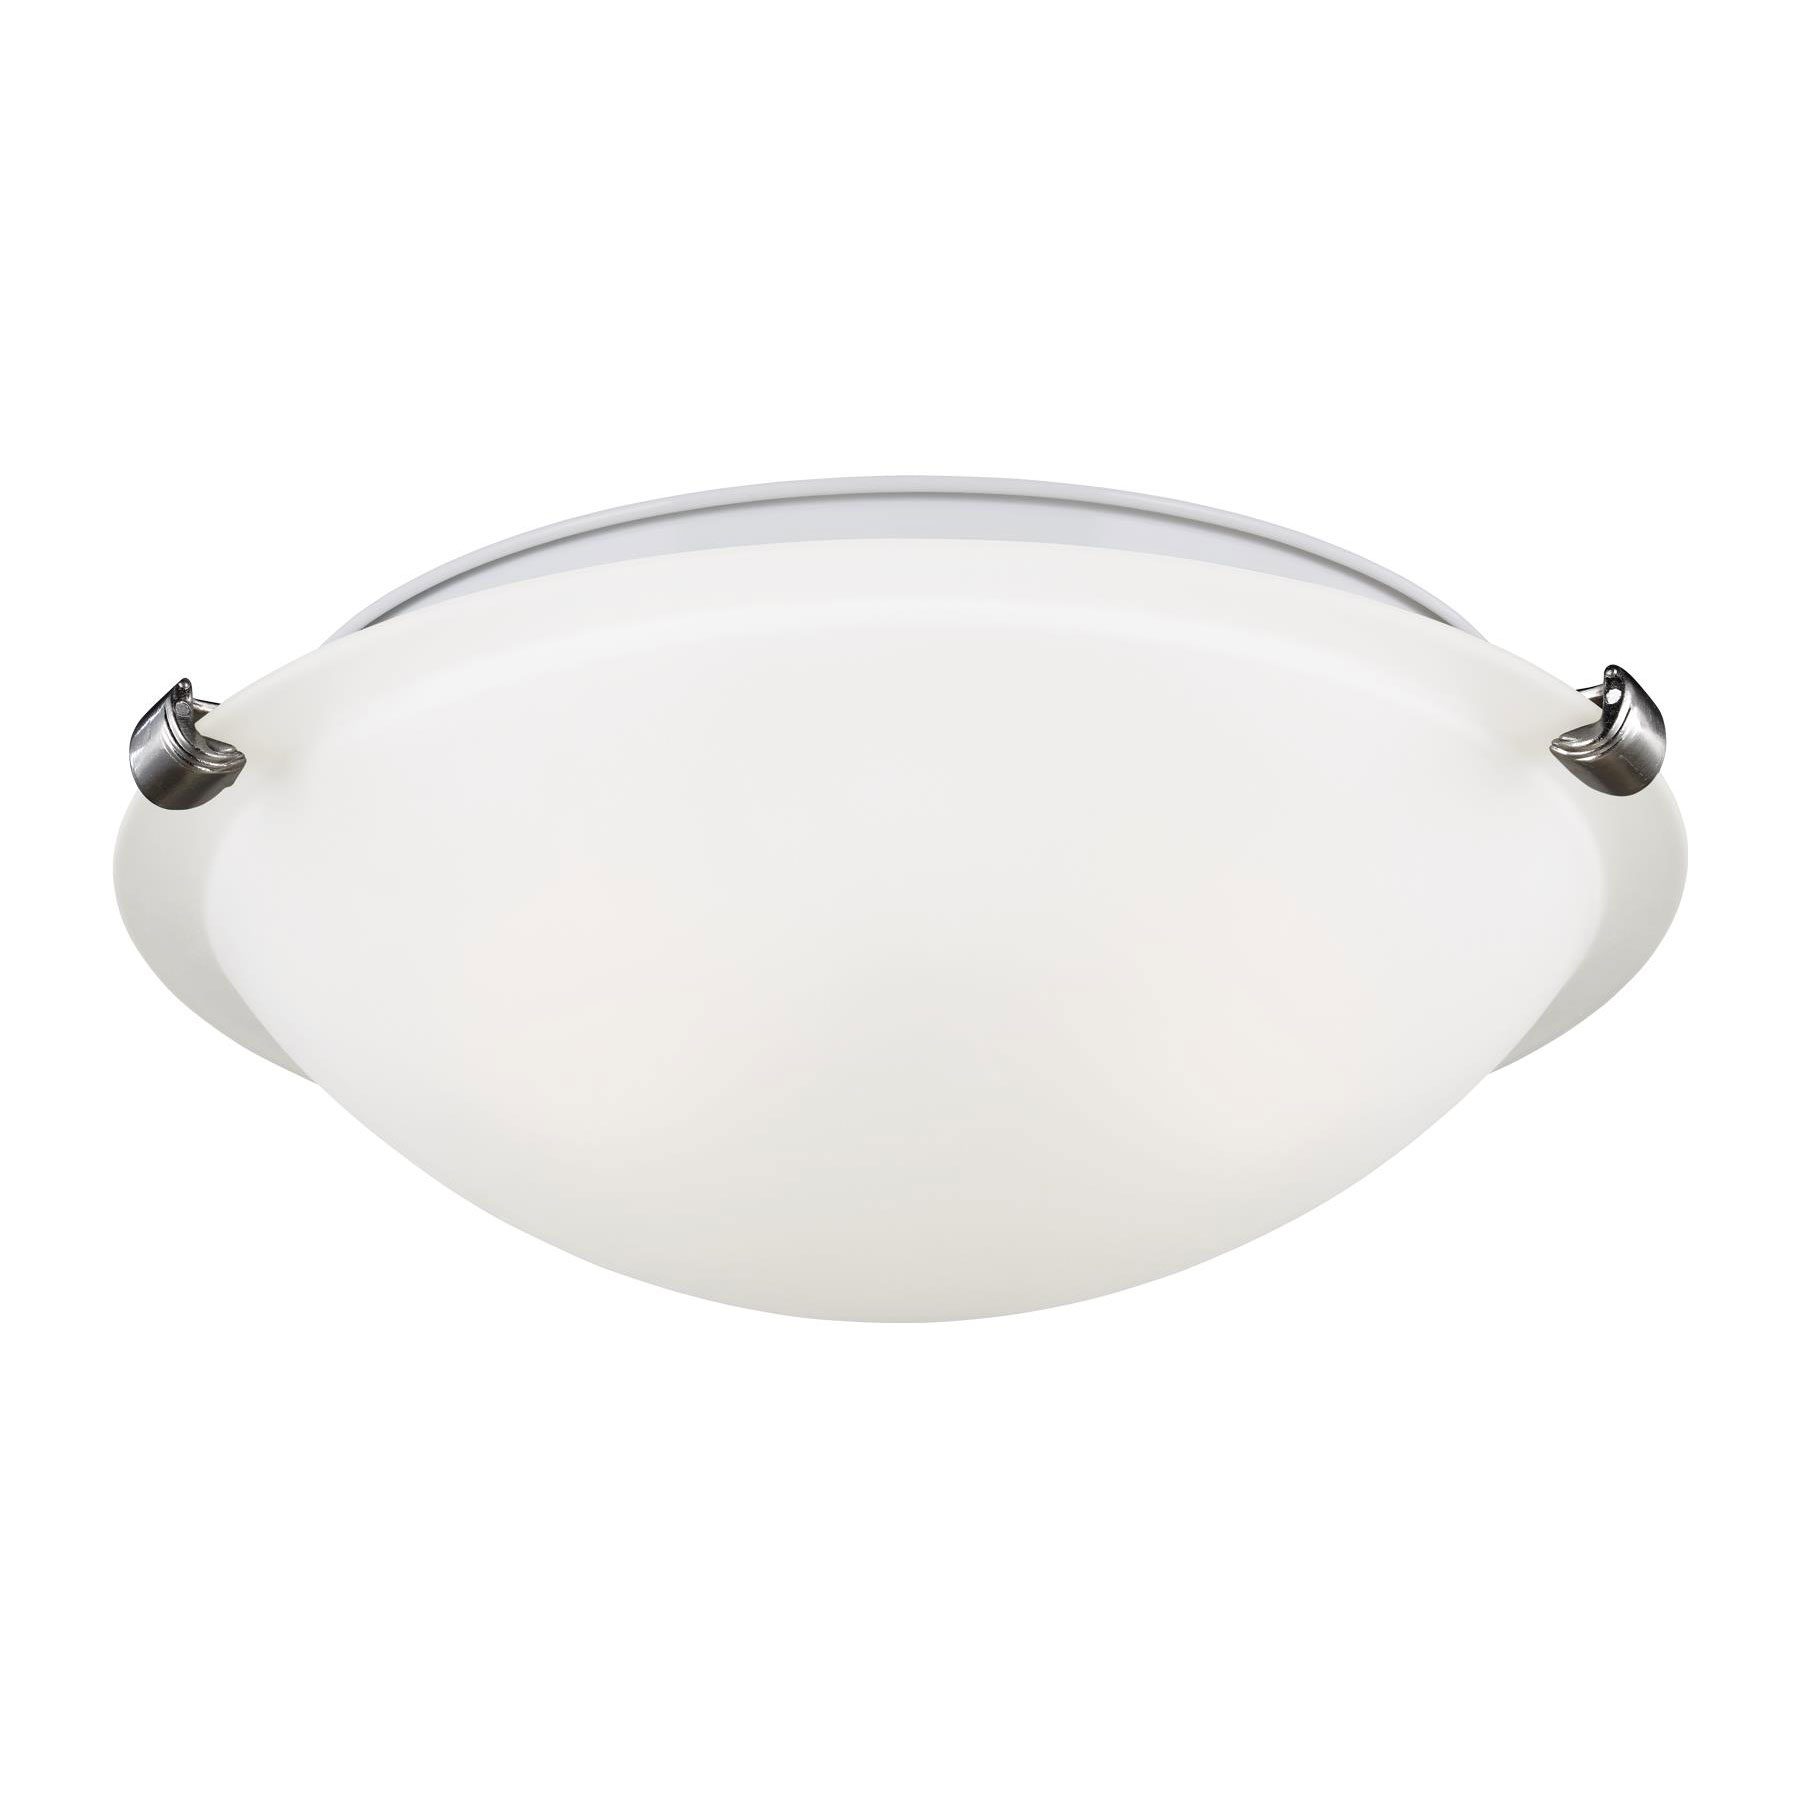 Clip Ceiling Light Fixture By Sea Gull